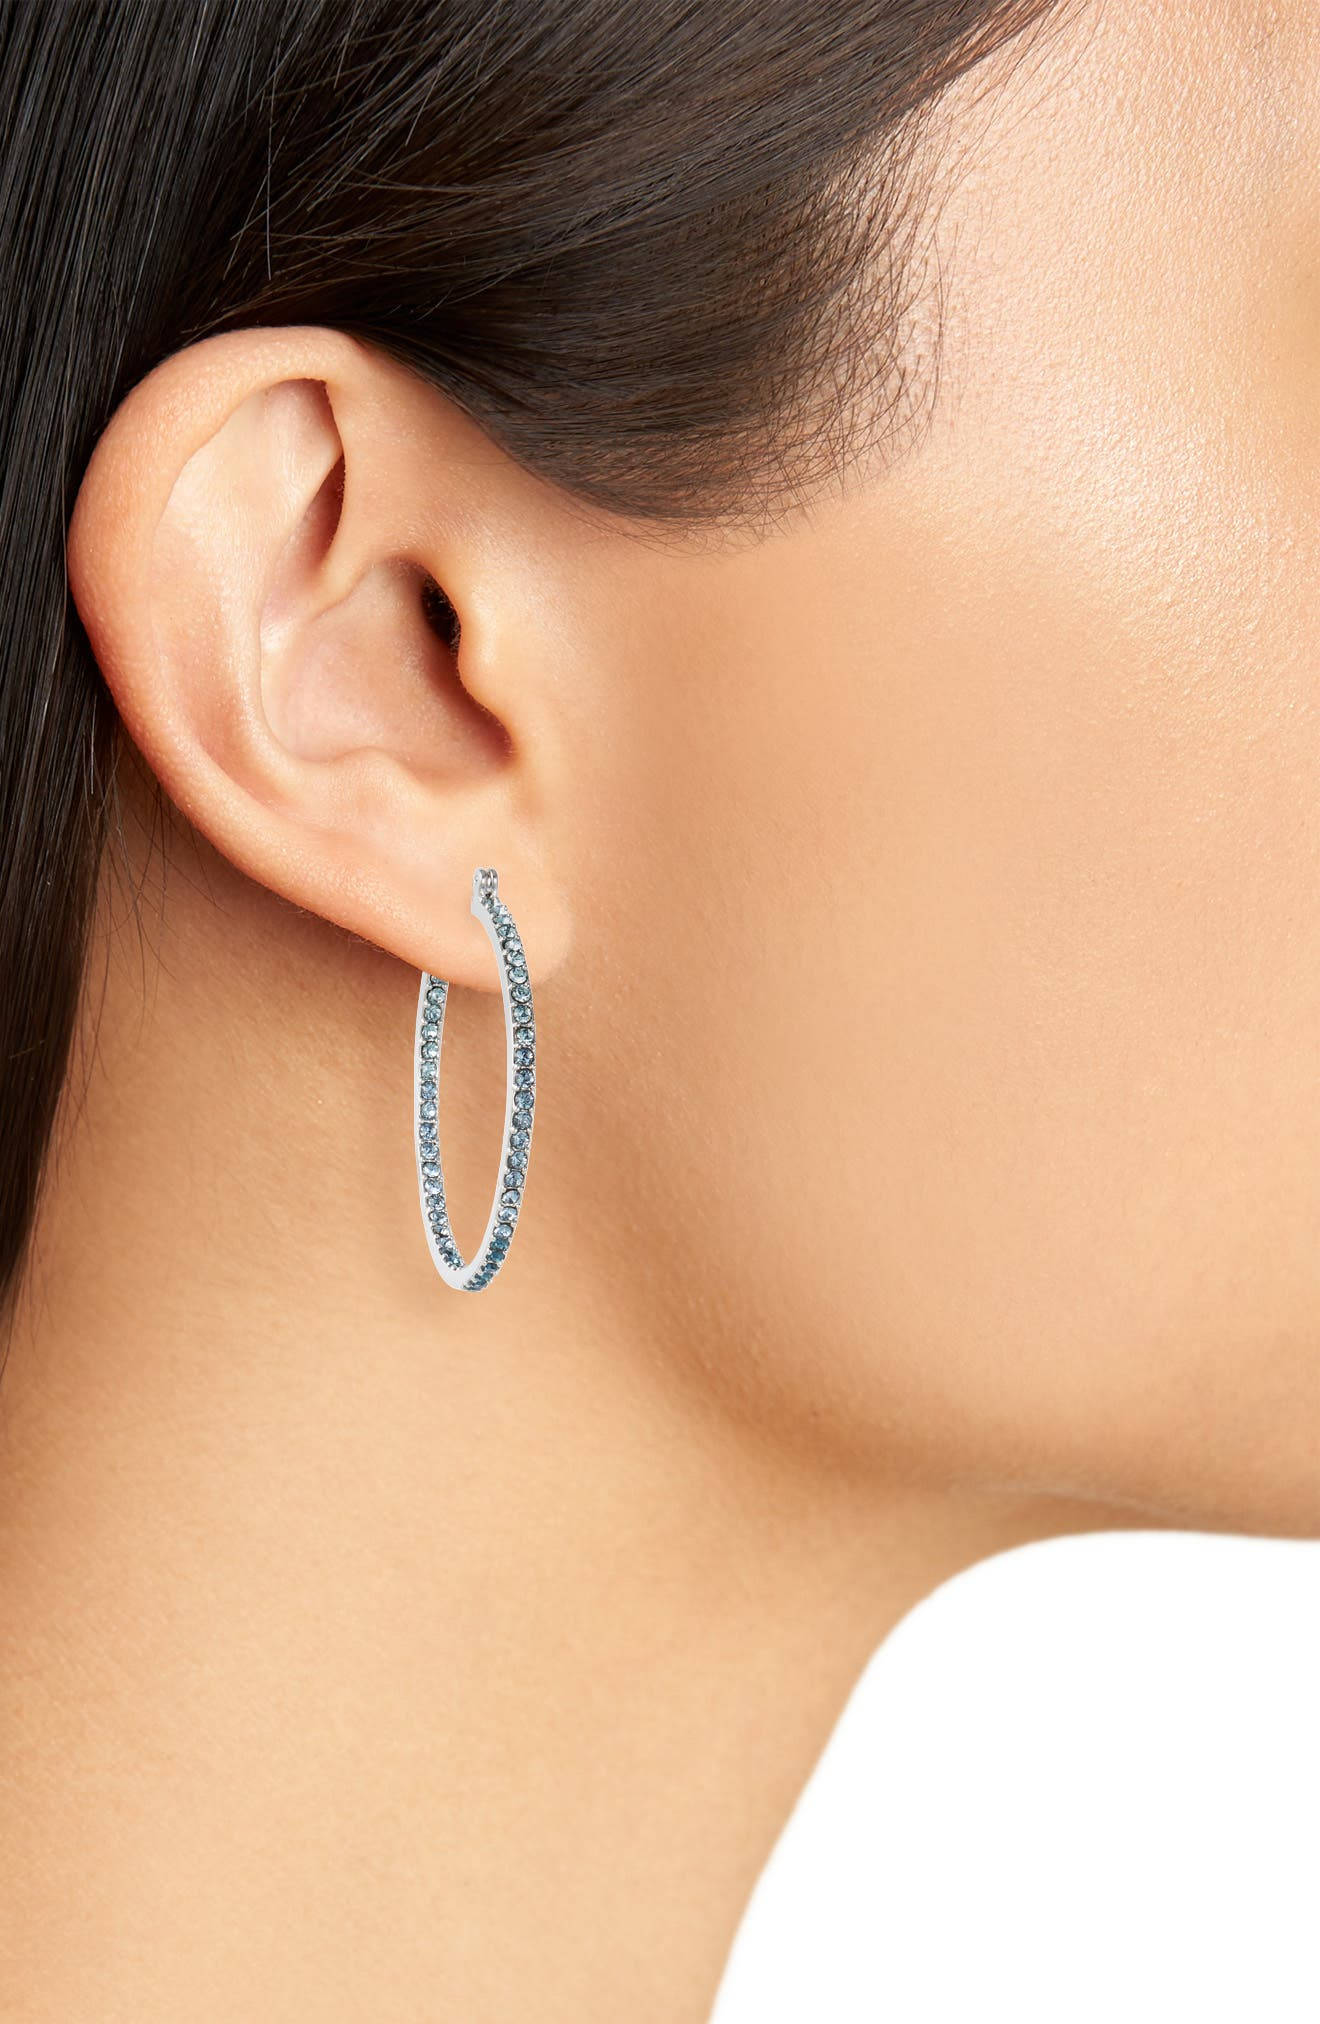 Pavé Crystal Hoop Earrings,                             Alternate thumbnail 2, color,                             BLUE/ SILVER